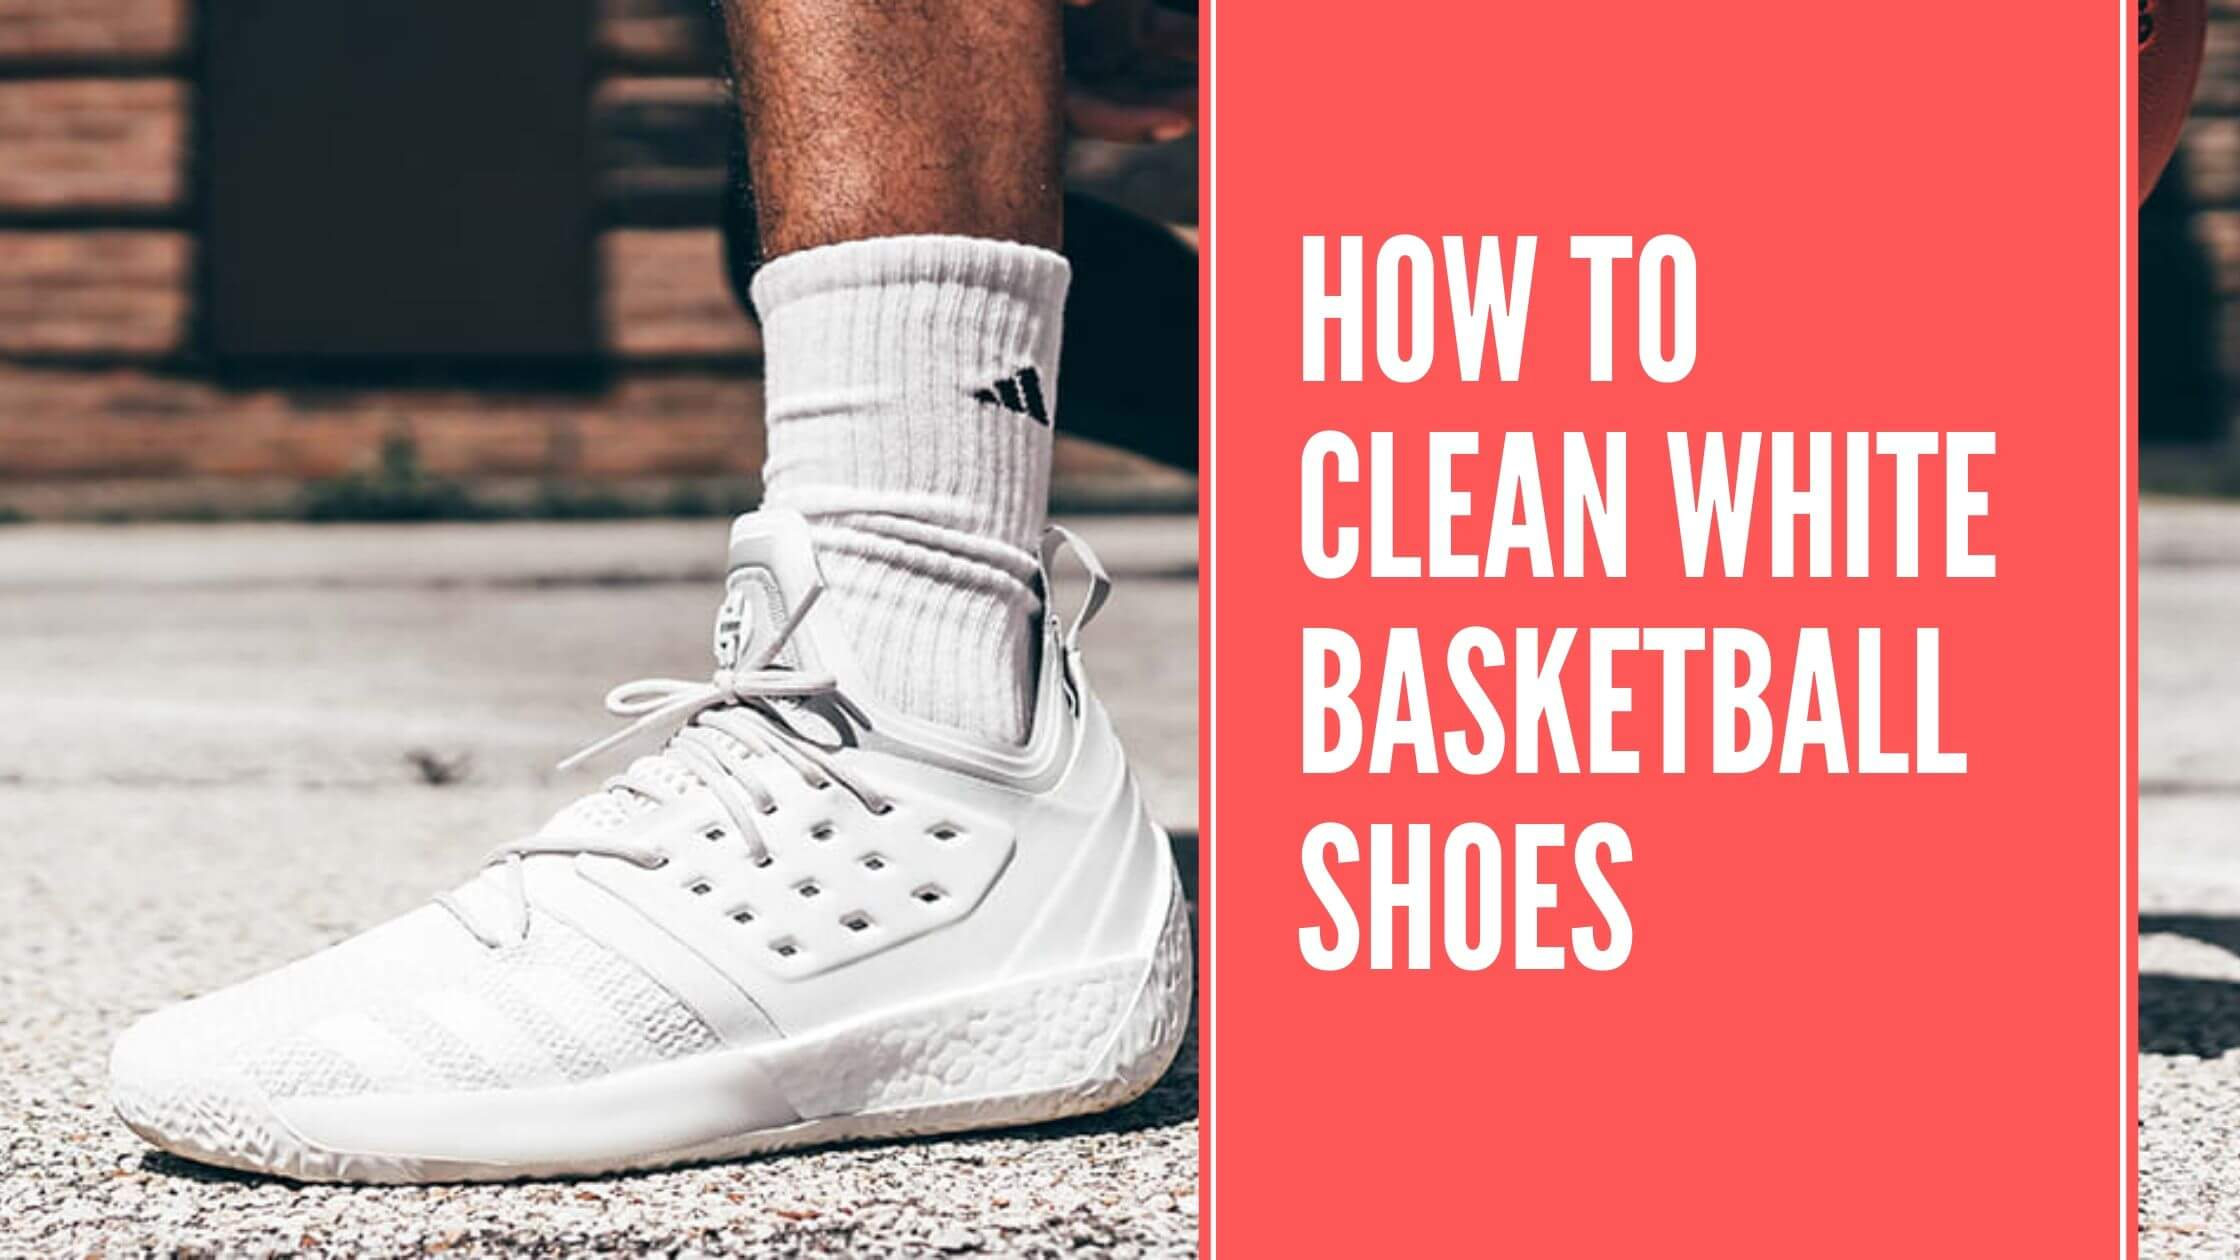 how to clean white basketball shoes by footwearguider.com